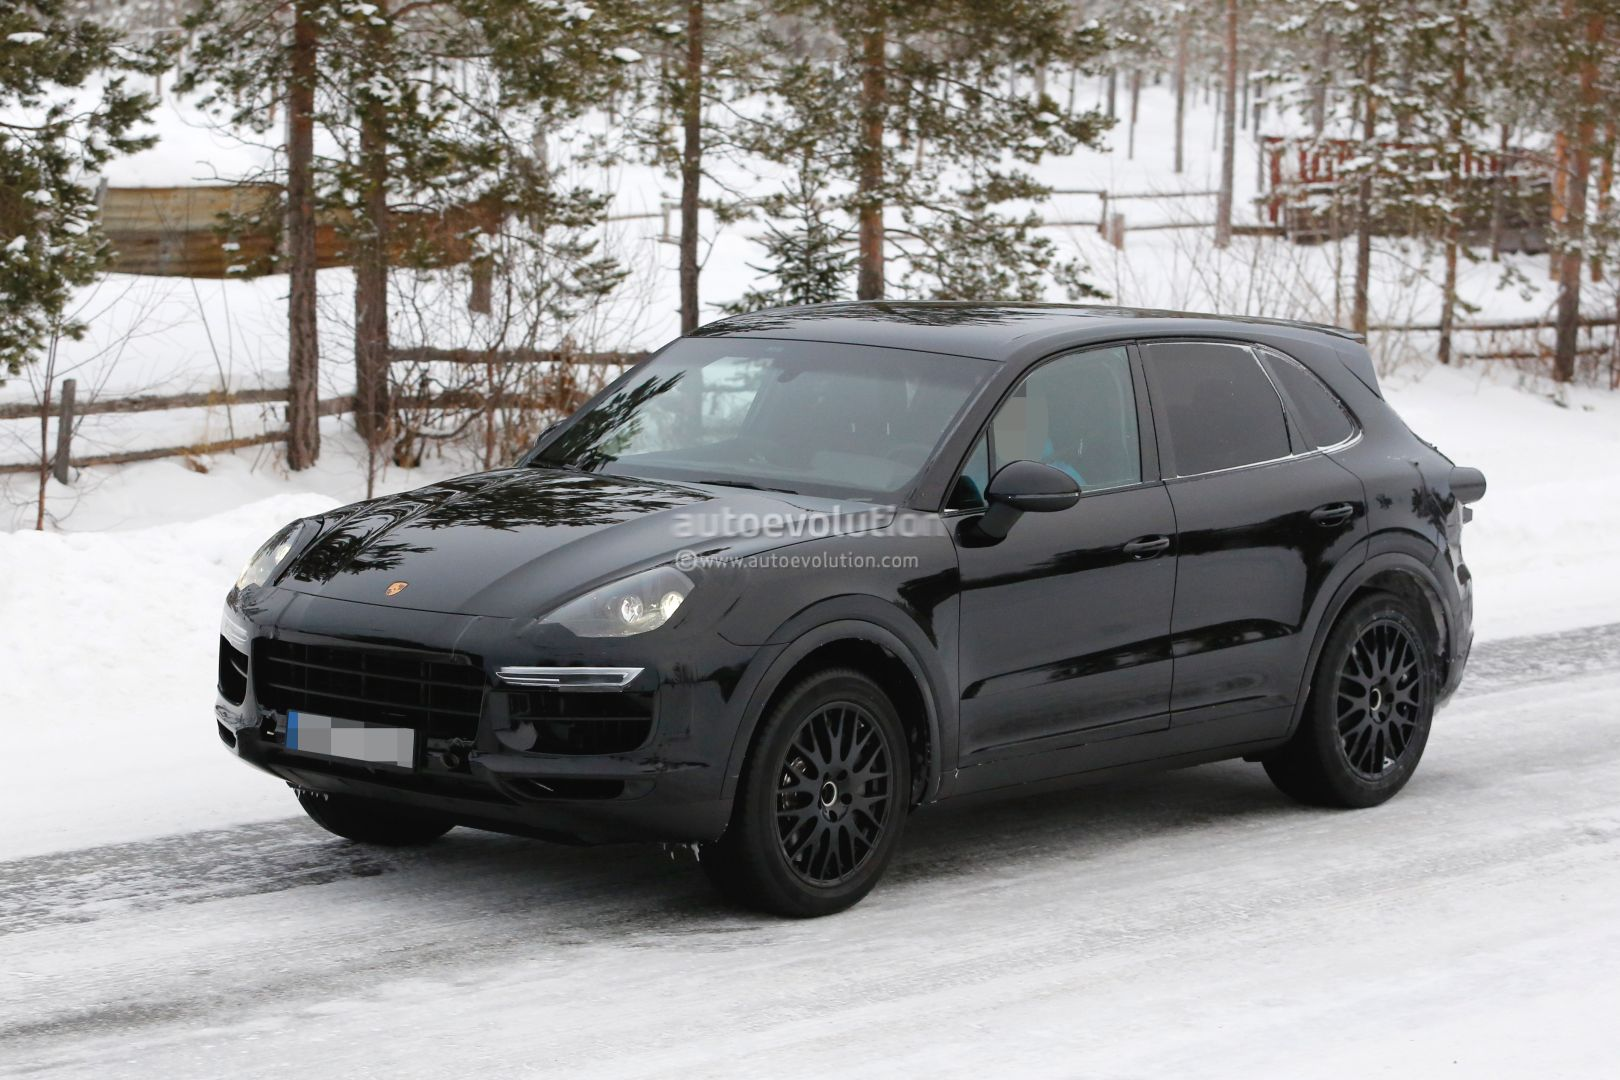 2018 Porsche Cayenne Spied Shows Active Rear Spoiler